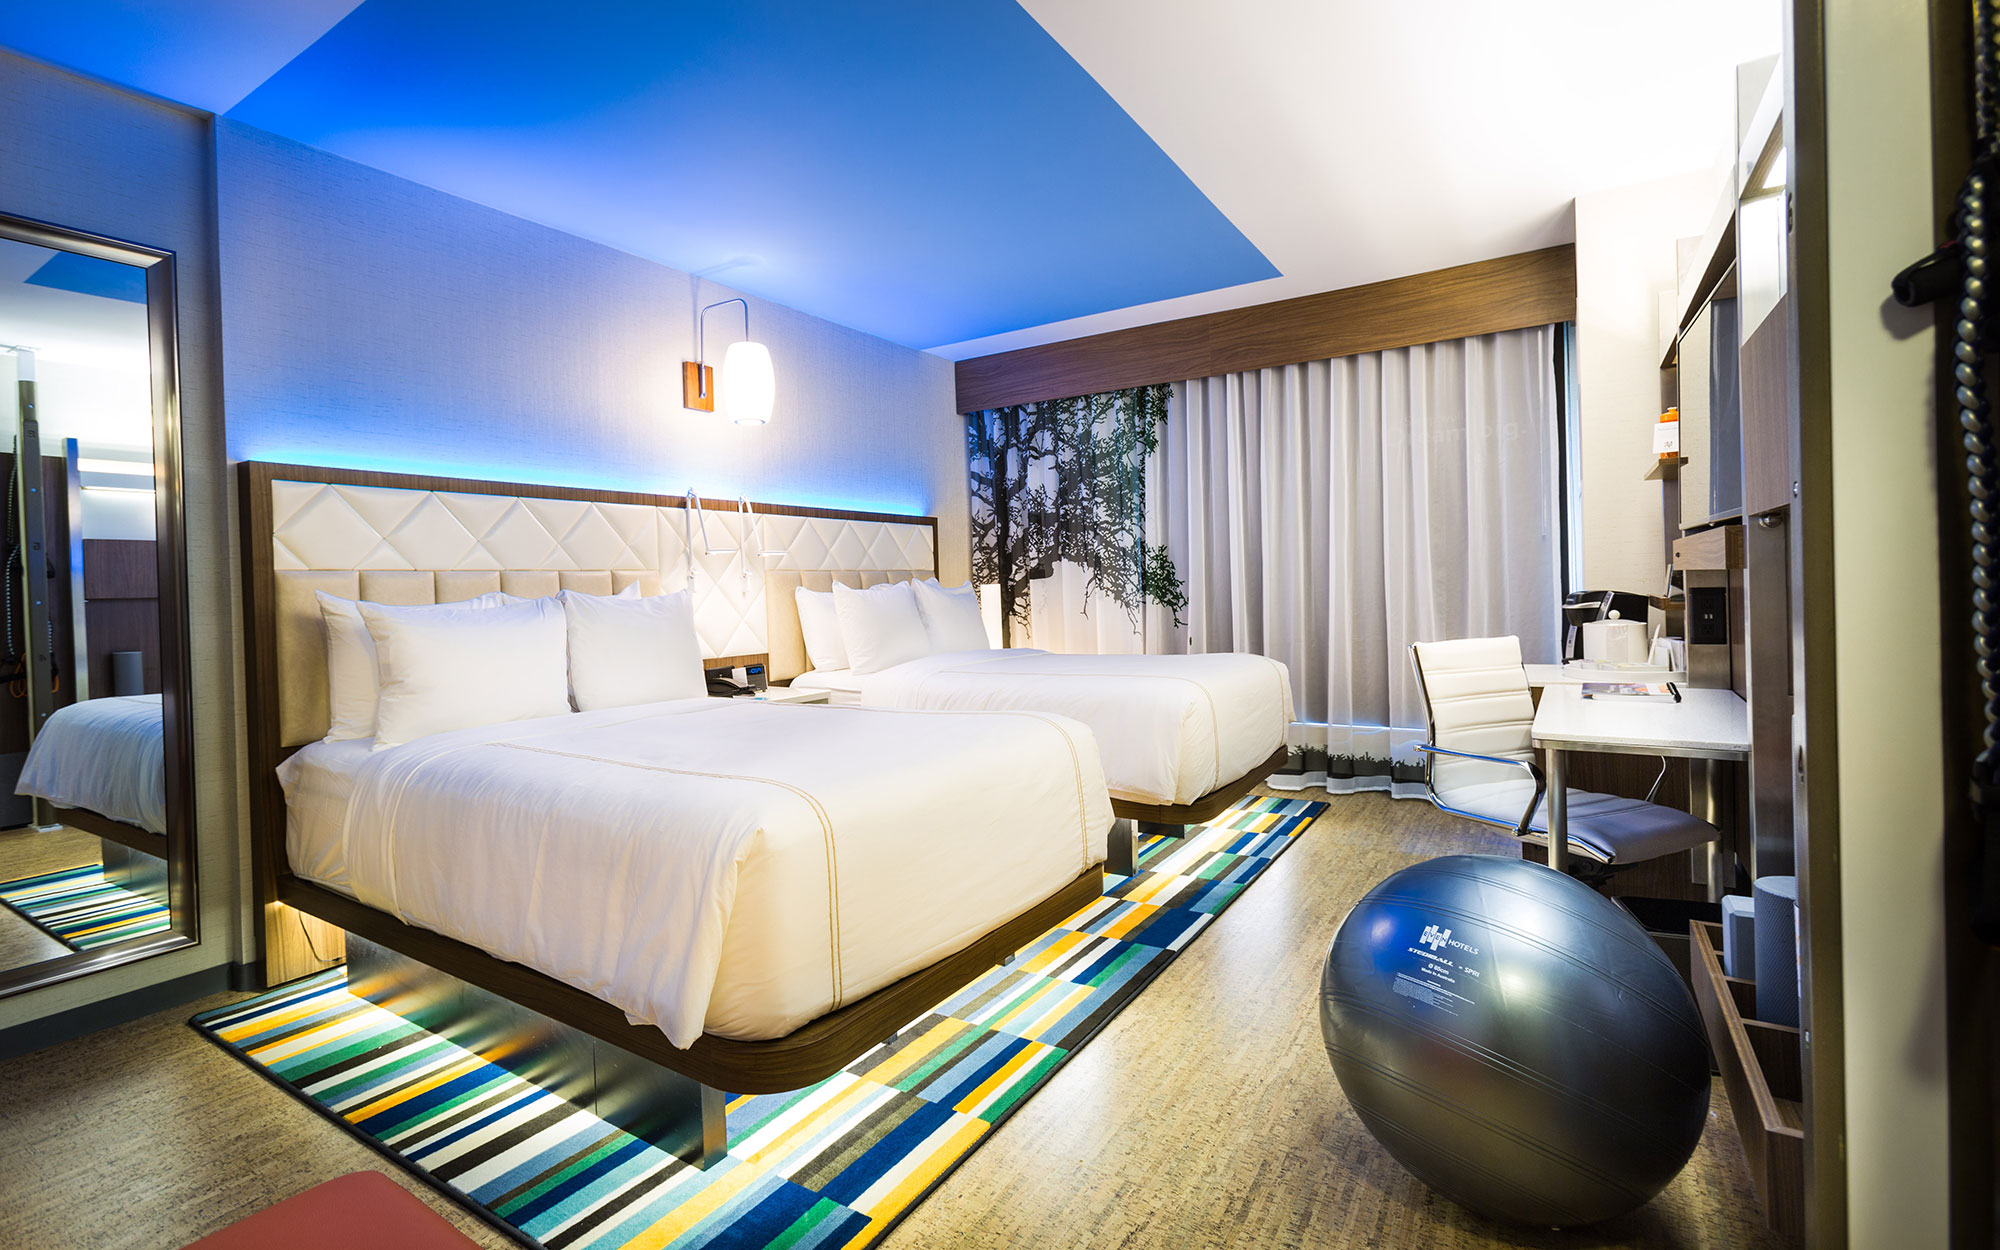 Best Hotels for Exercise: Even Hotel, New York City